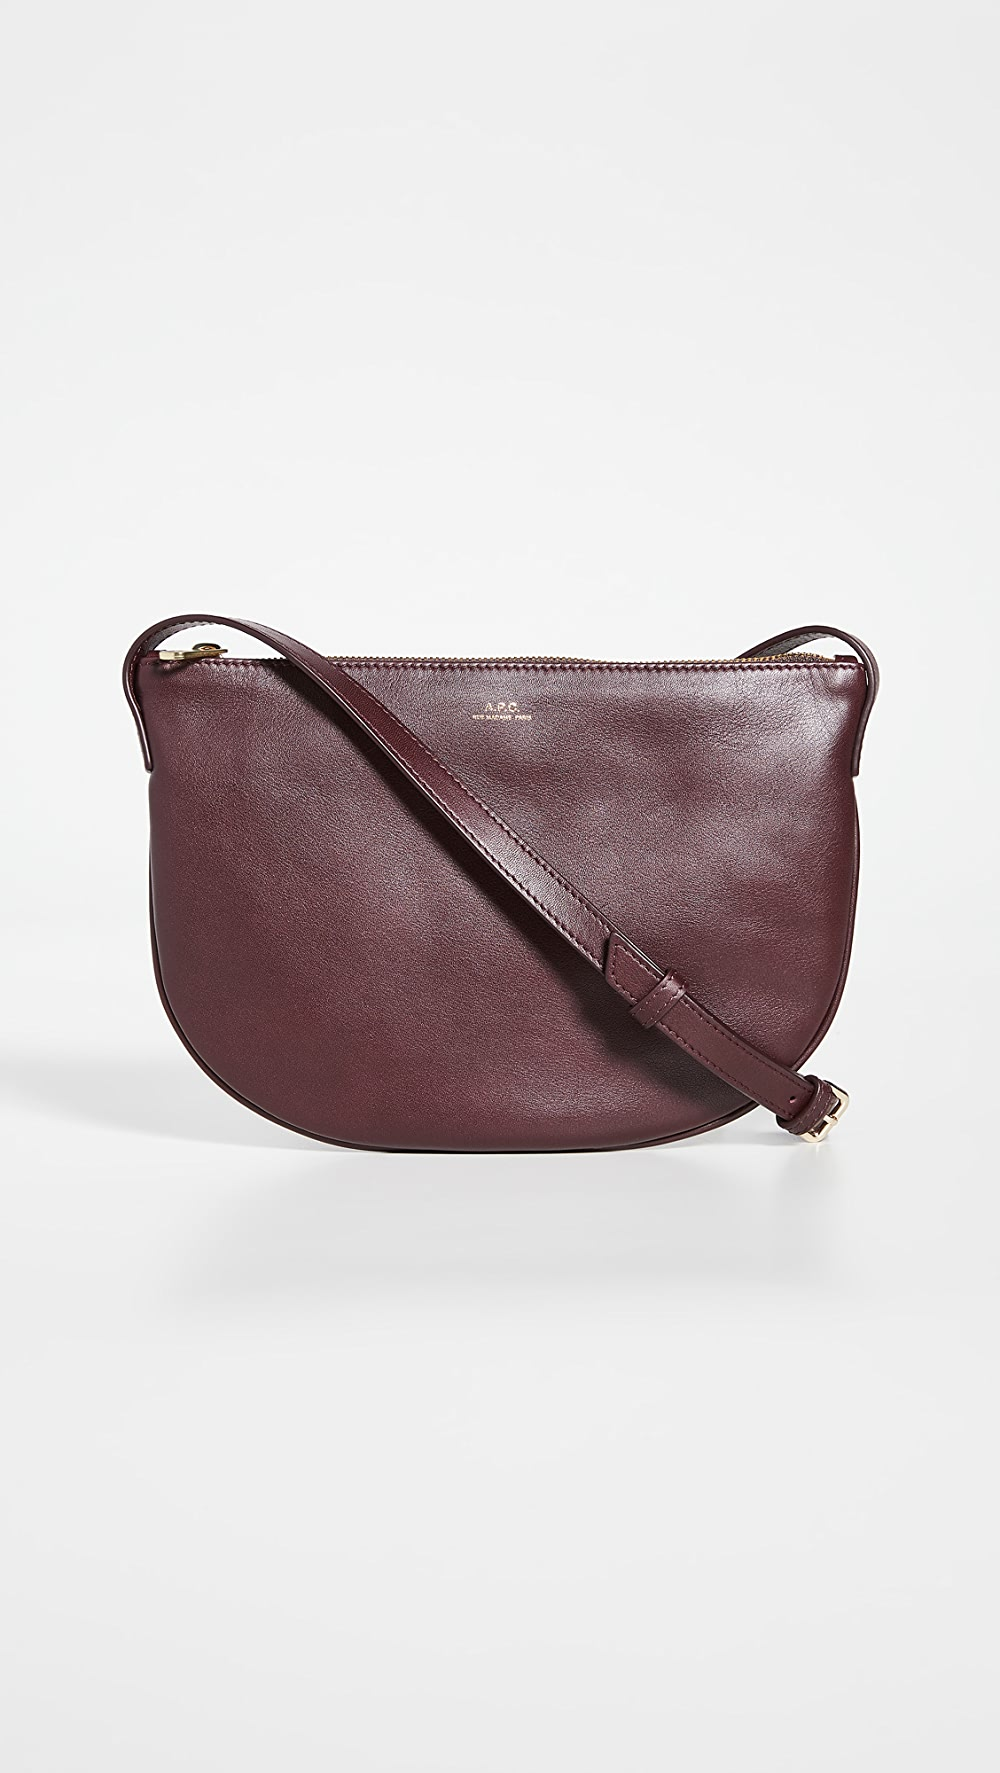 Intellective A.p.c. - Maelys Crossbody Bag Cleaning The Oral Cavity.